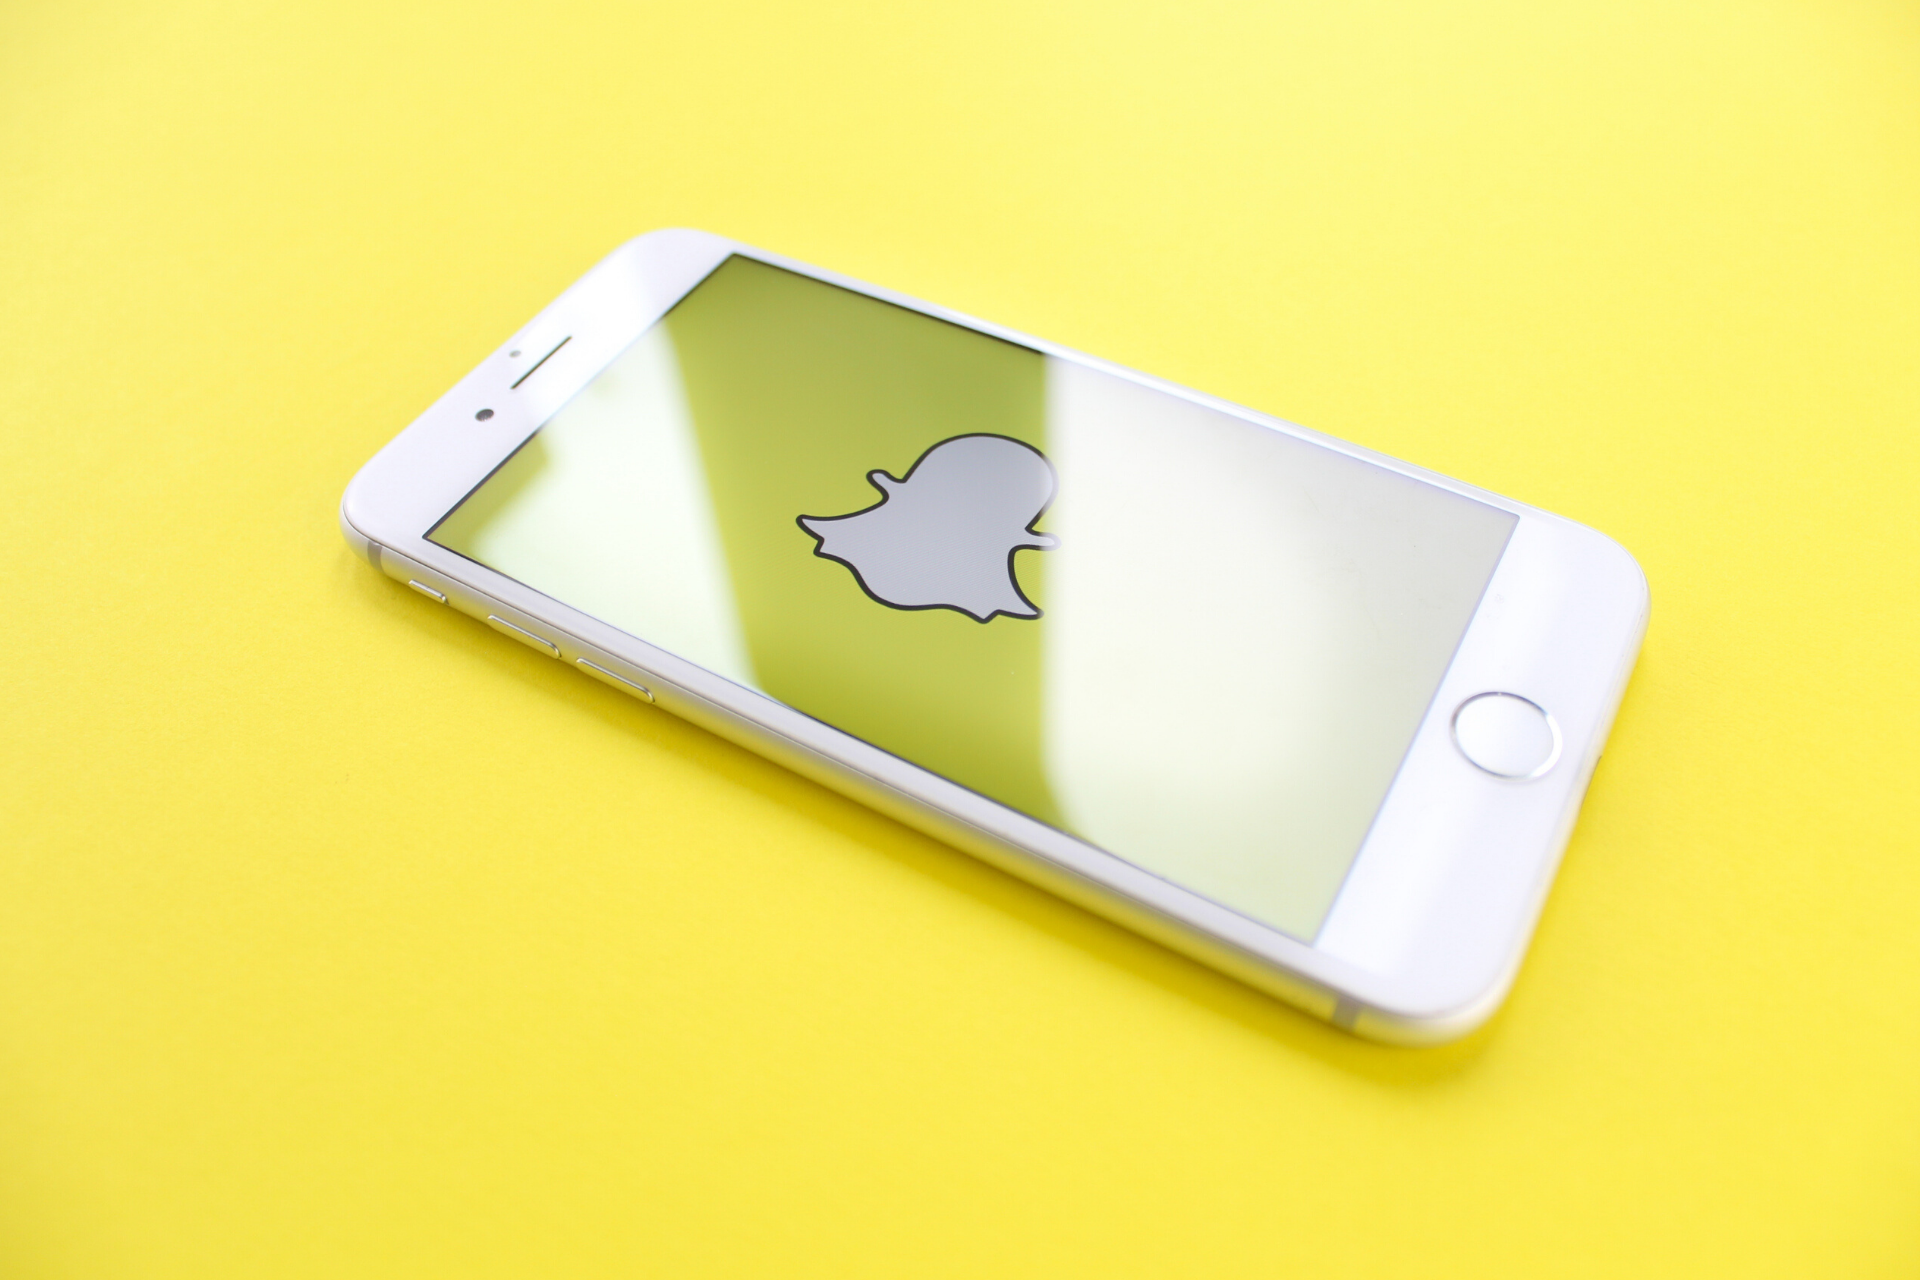 Since Snapchat offers a wide variety of ad options and specifications to choose from, we're about to introduce you to some of the most common categories.